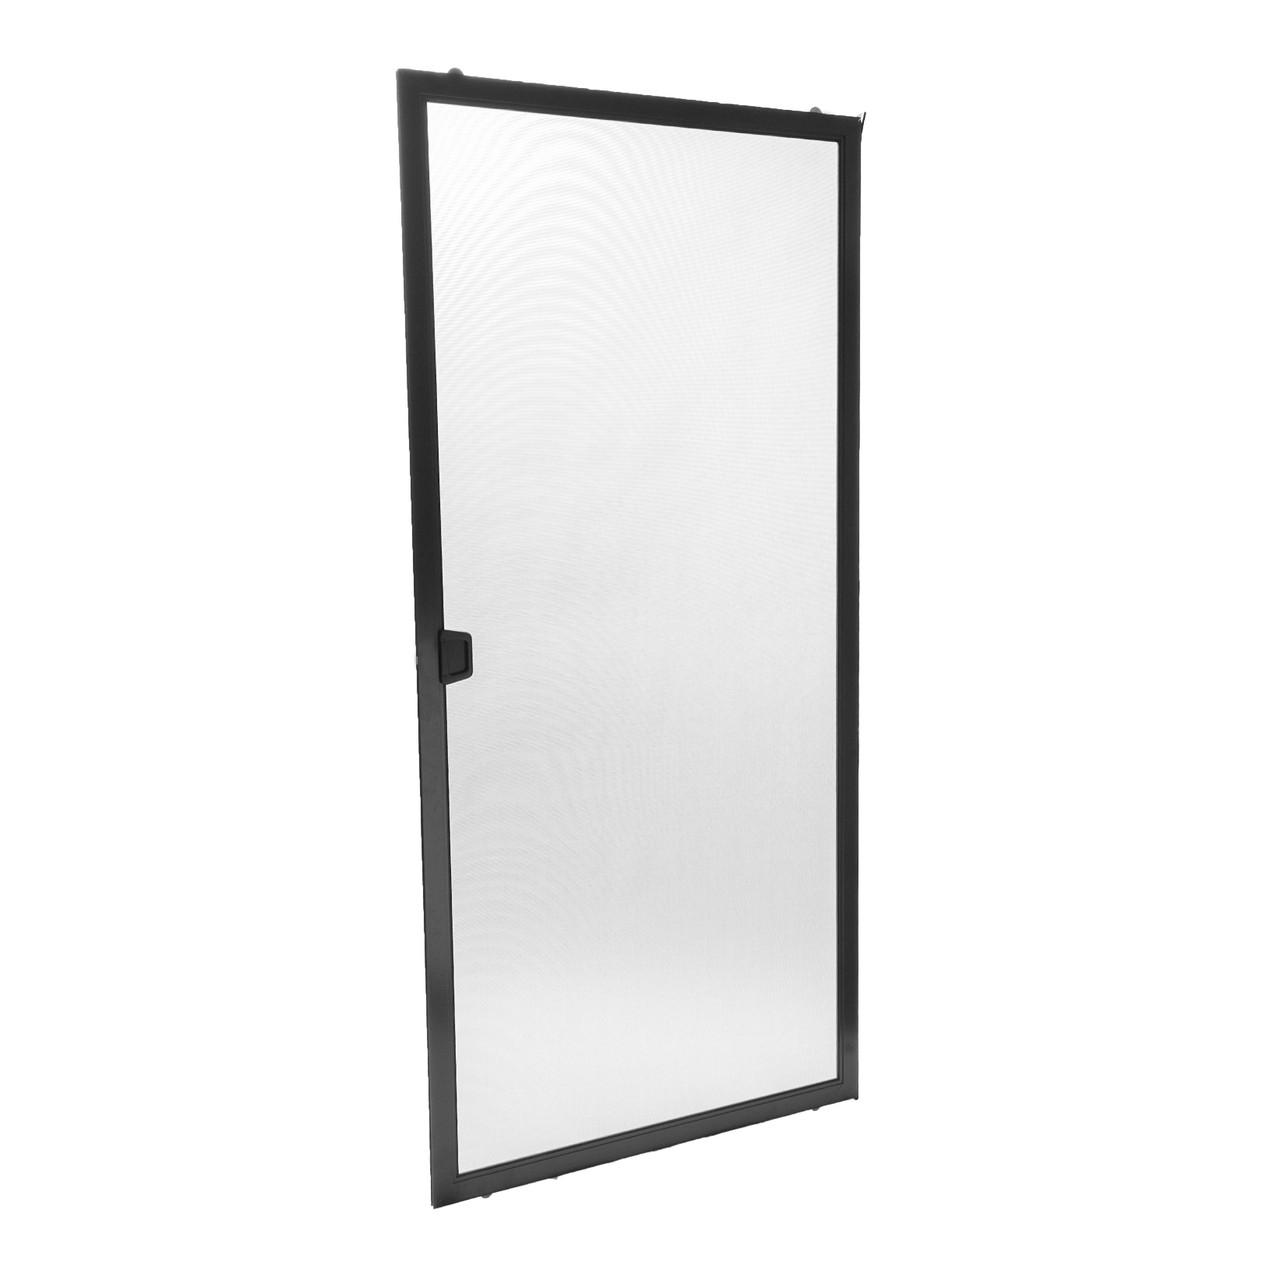 BMT AllergyGuard™ Sliding Screen Door